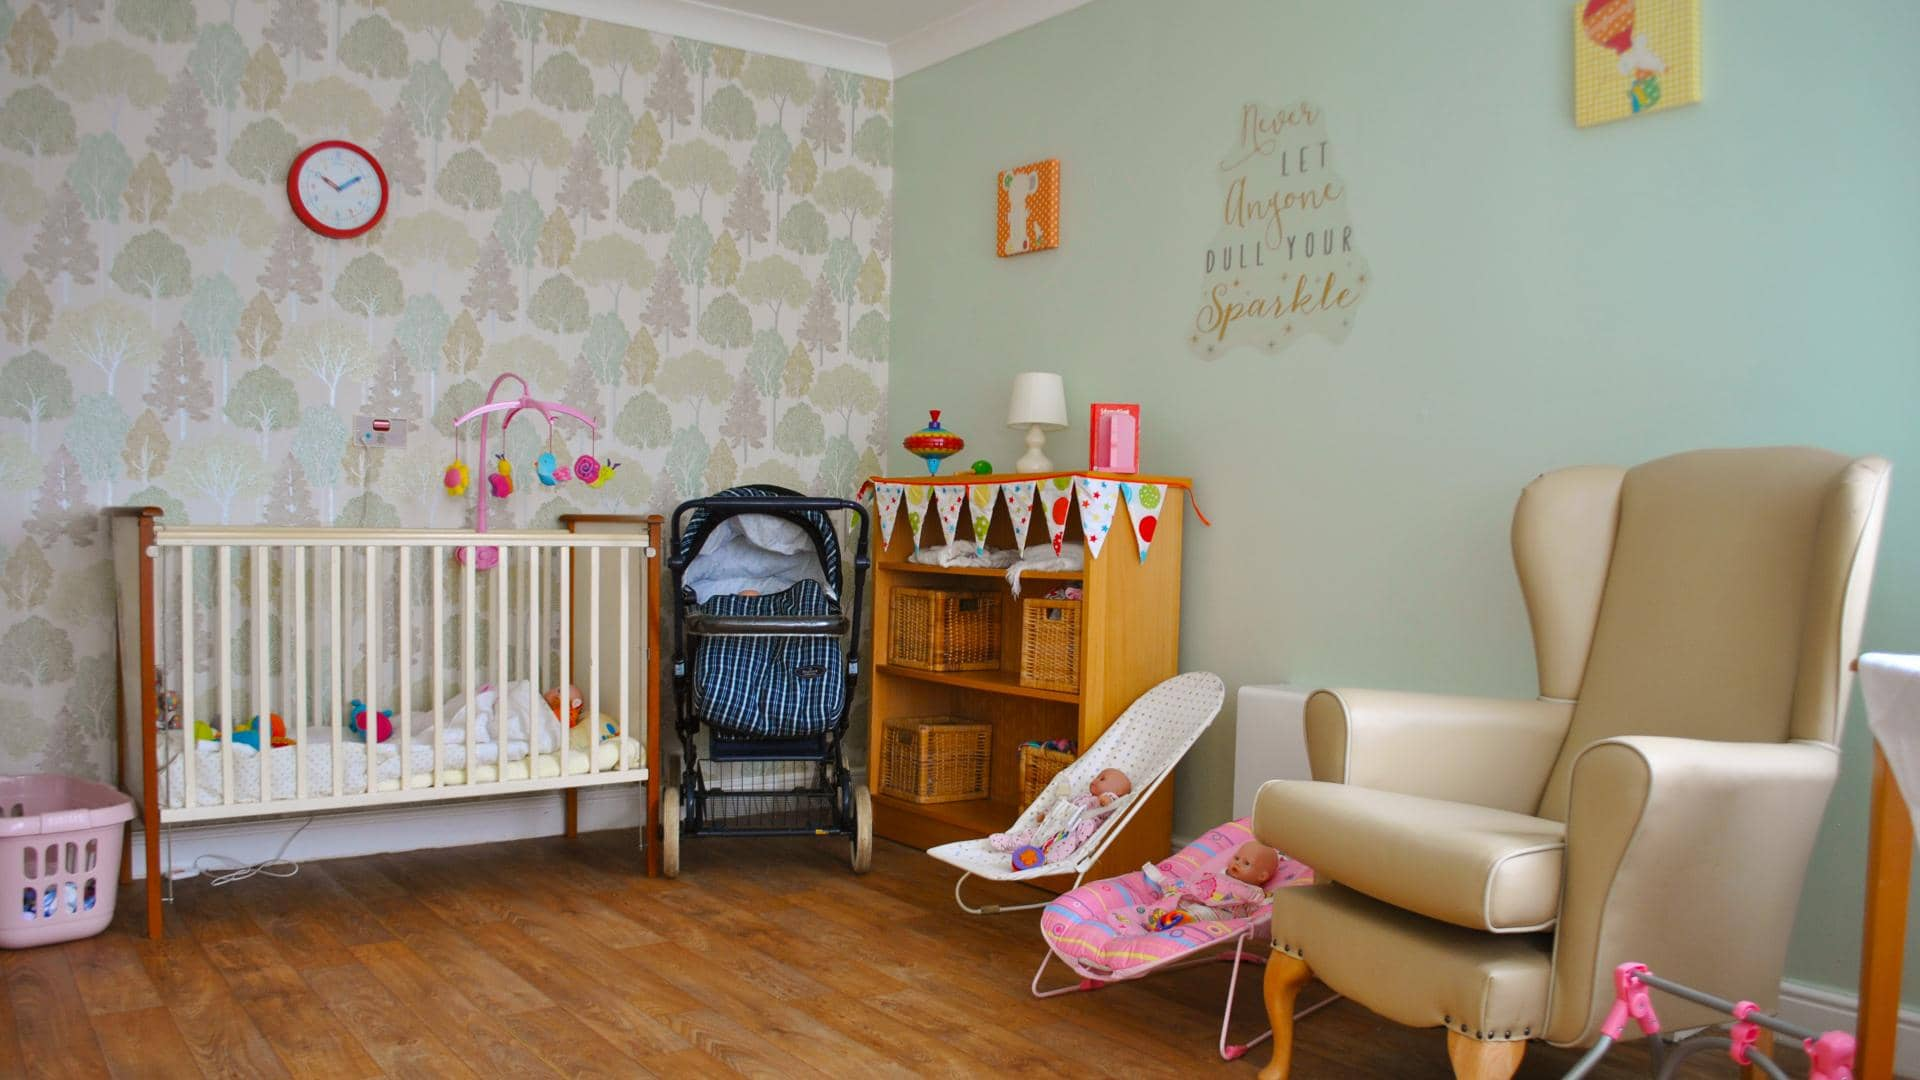 Rastrick Hall and Grange Doll Therapy Room